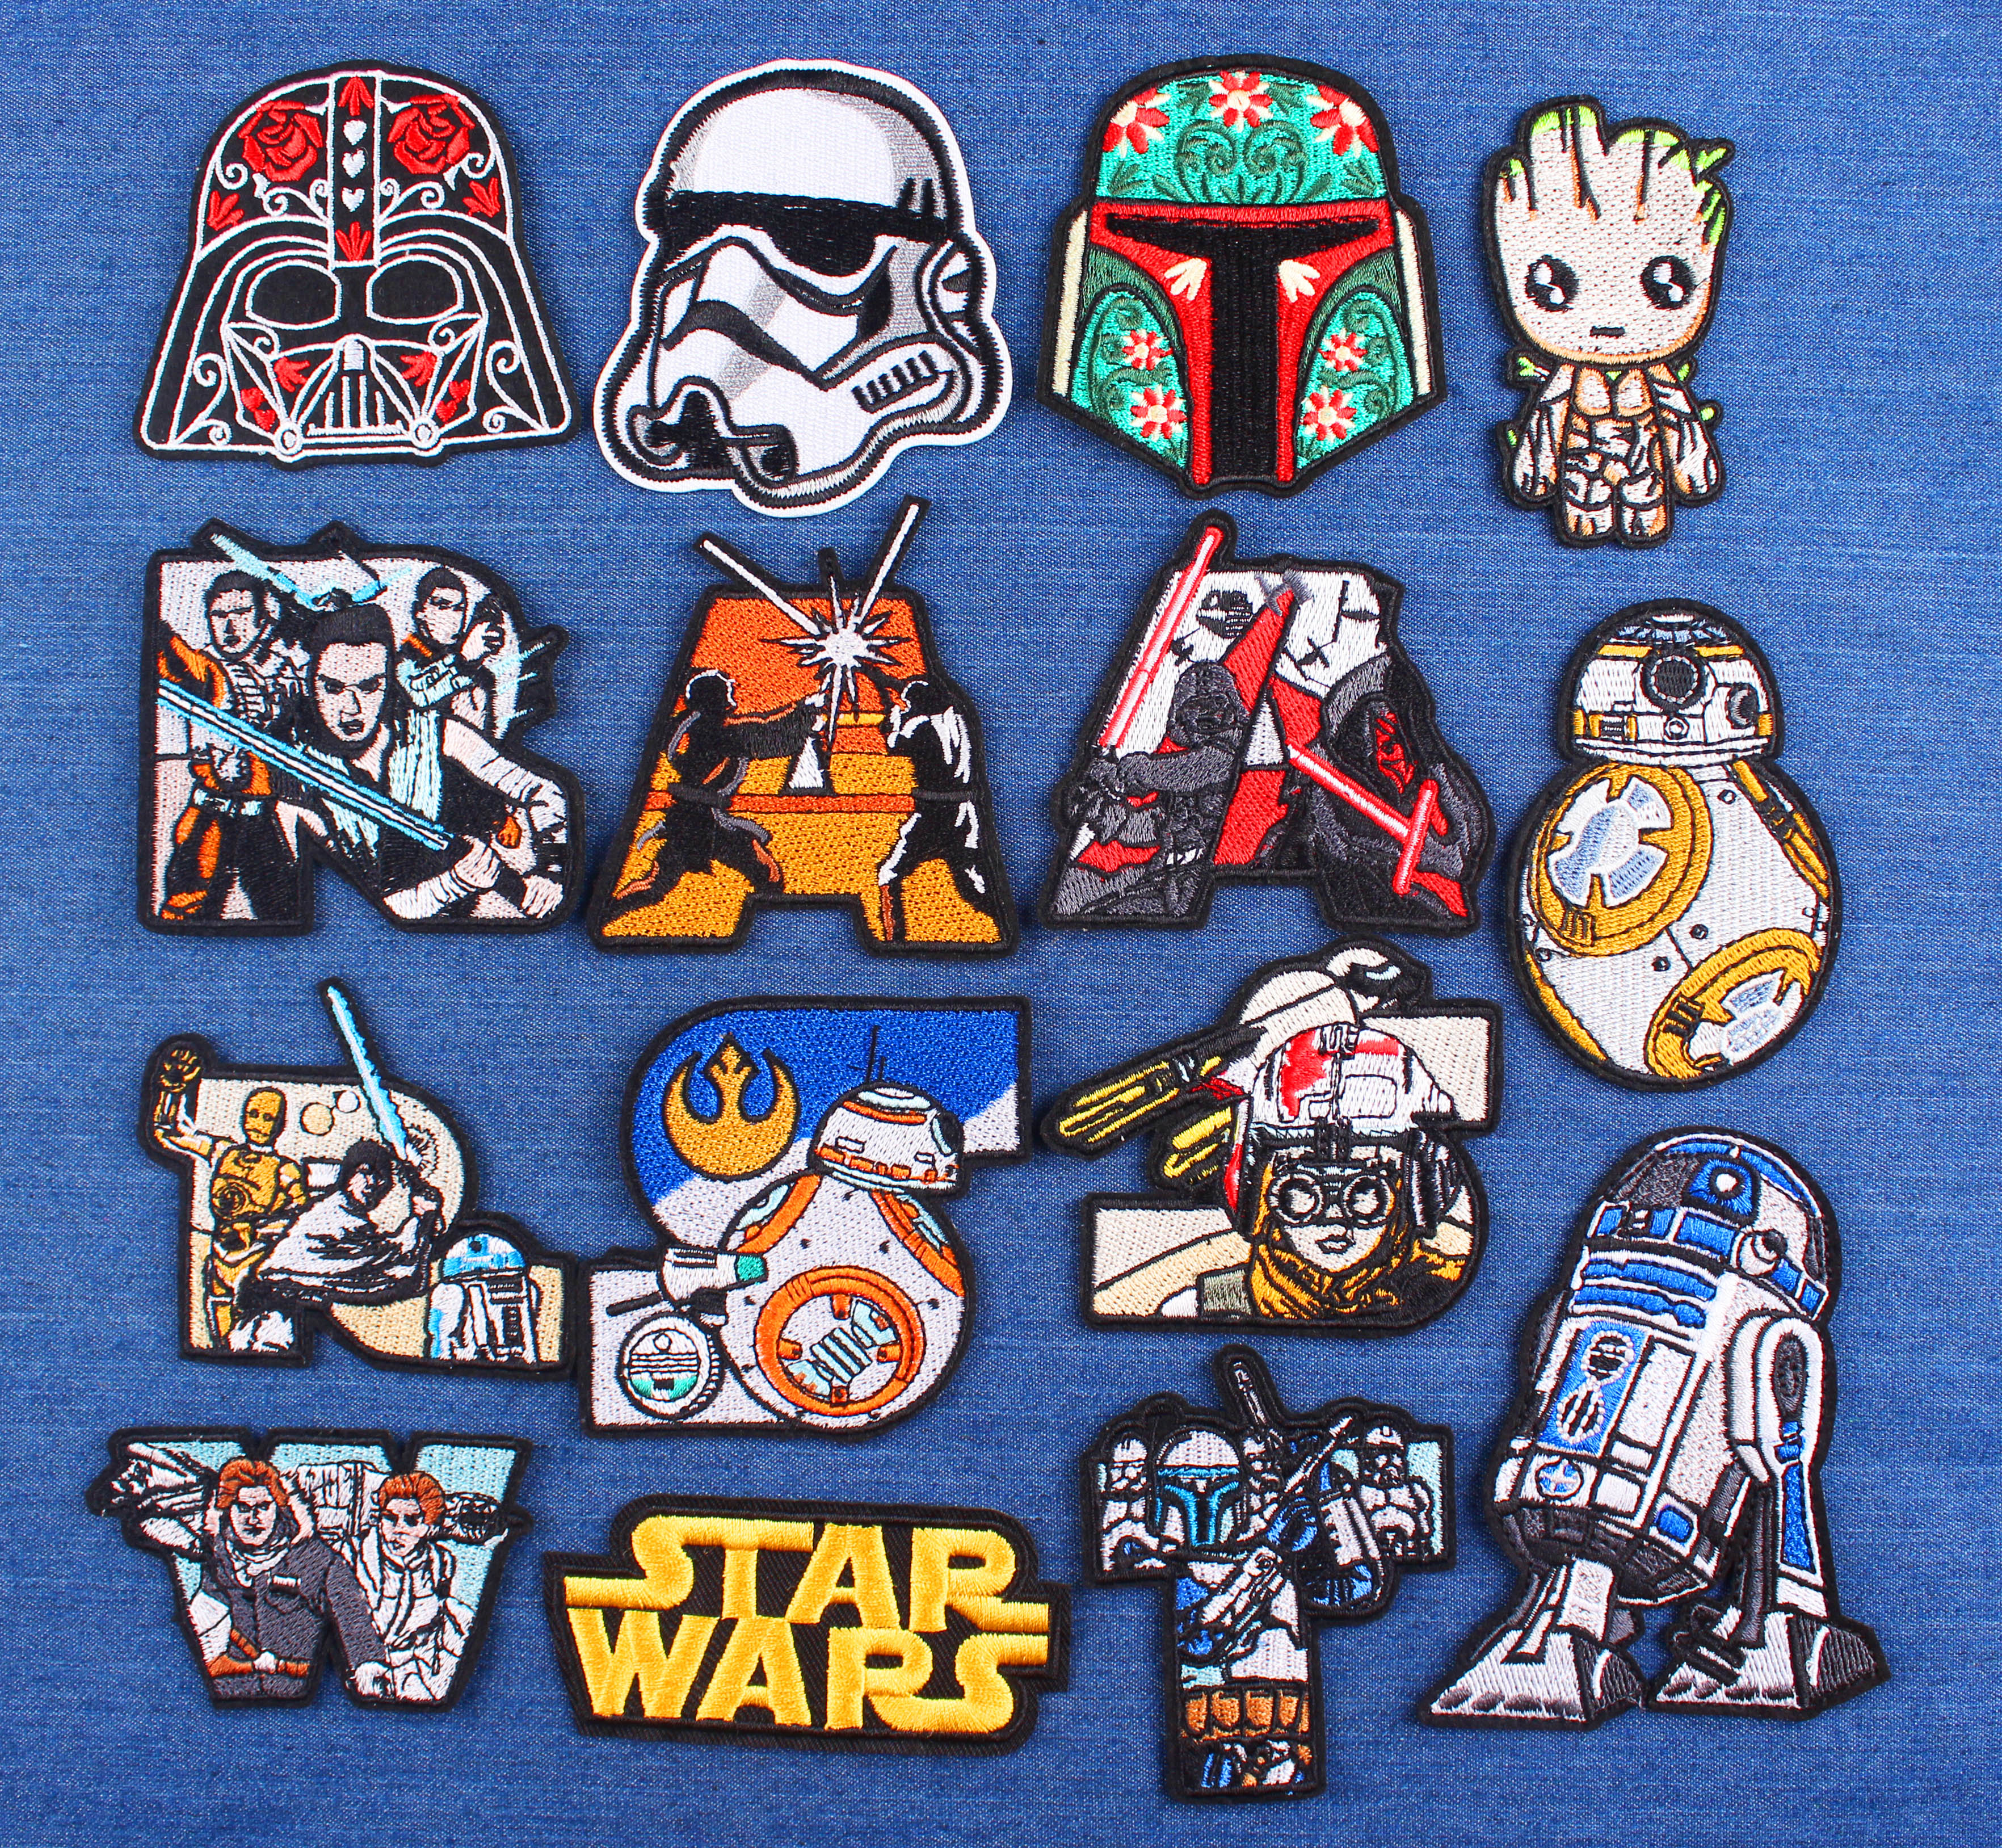 Iron Patch Fusible Clothing Sticker For Clothes Application New Arrived Star Wars Patch Jacket Jeans Appliqued Badge On The Back